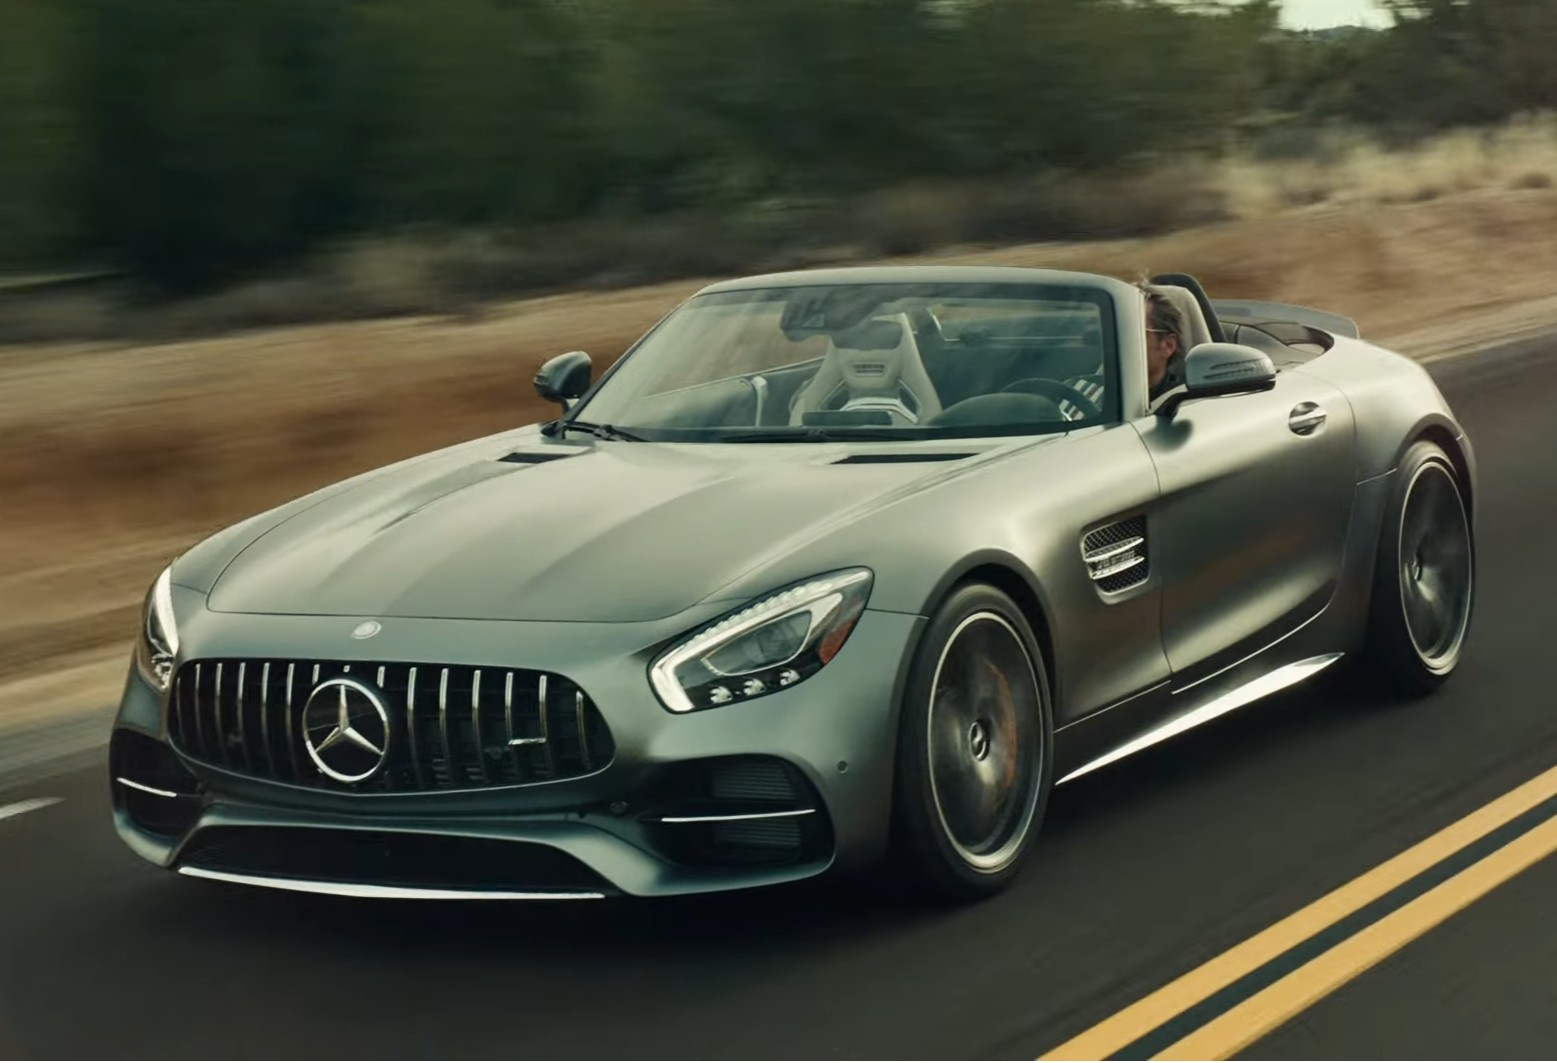 Good Sports Cars For First Car